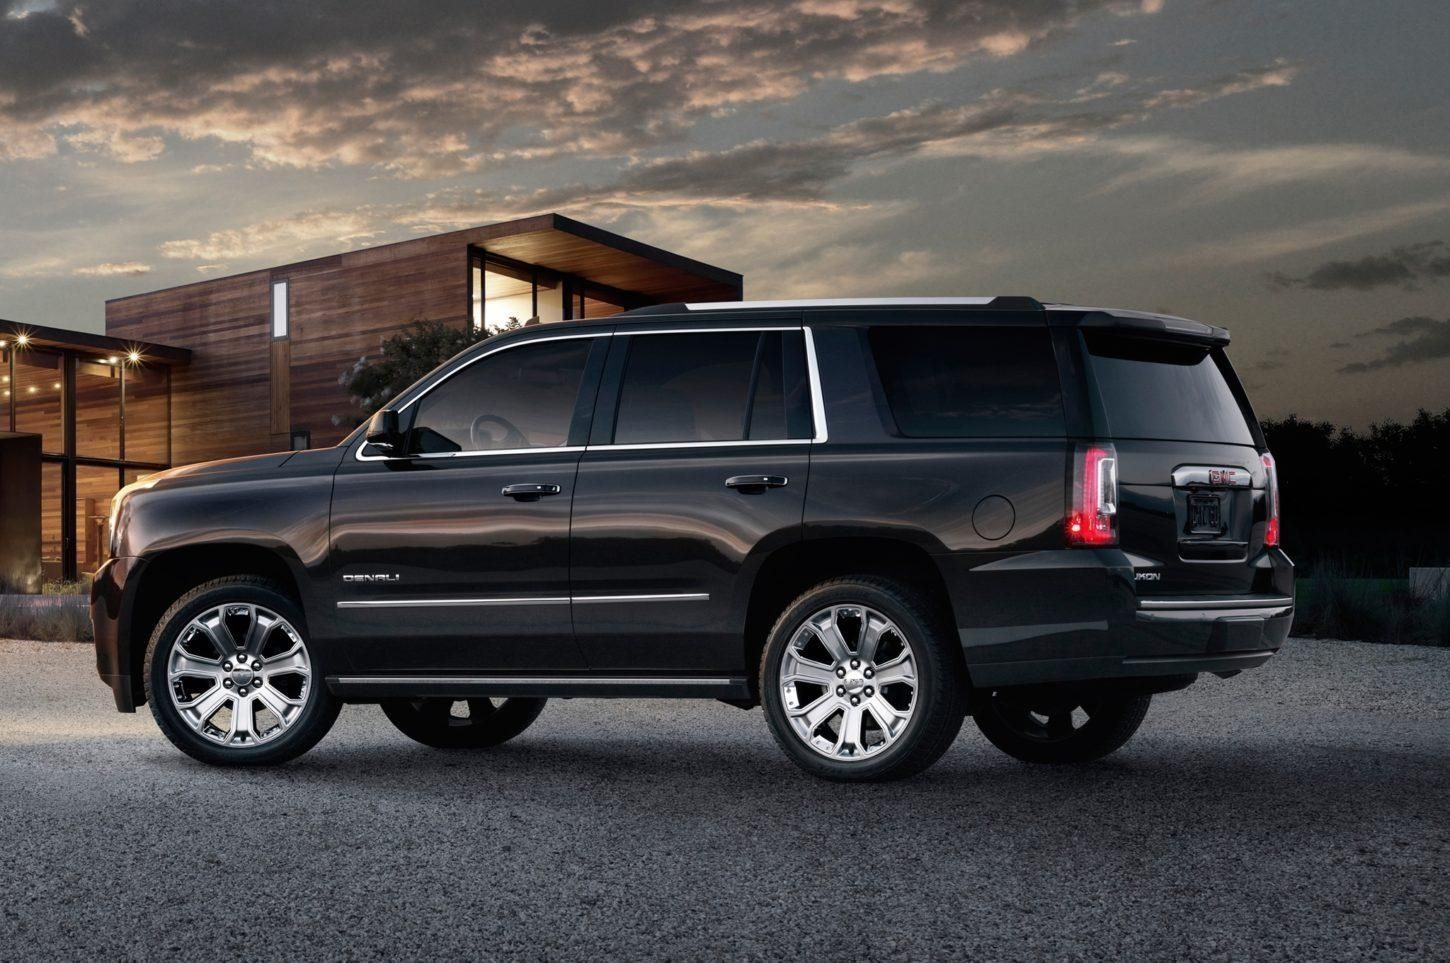 Best Chevy Tahoe 2019 Release Specs And Review Chevrolet Tahoe Gmc Yukon Gmc Yukon Denali